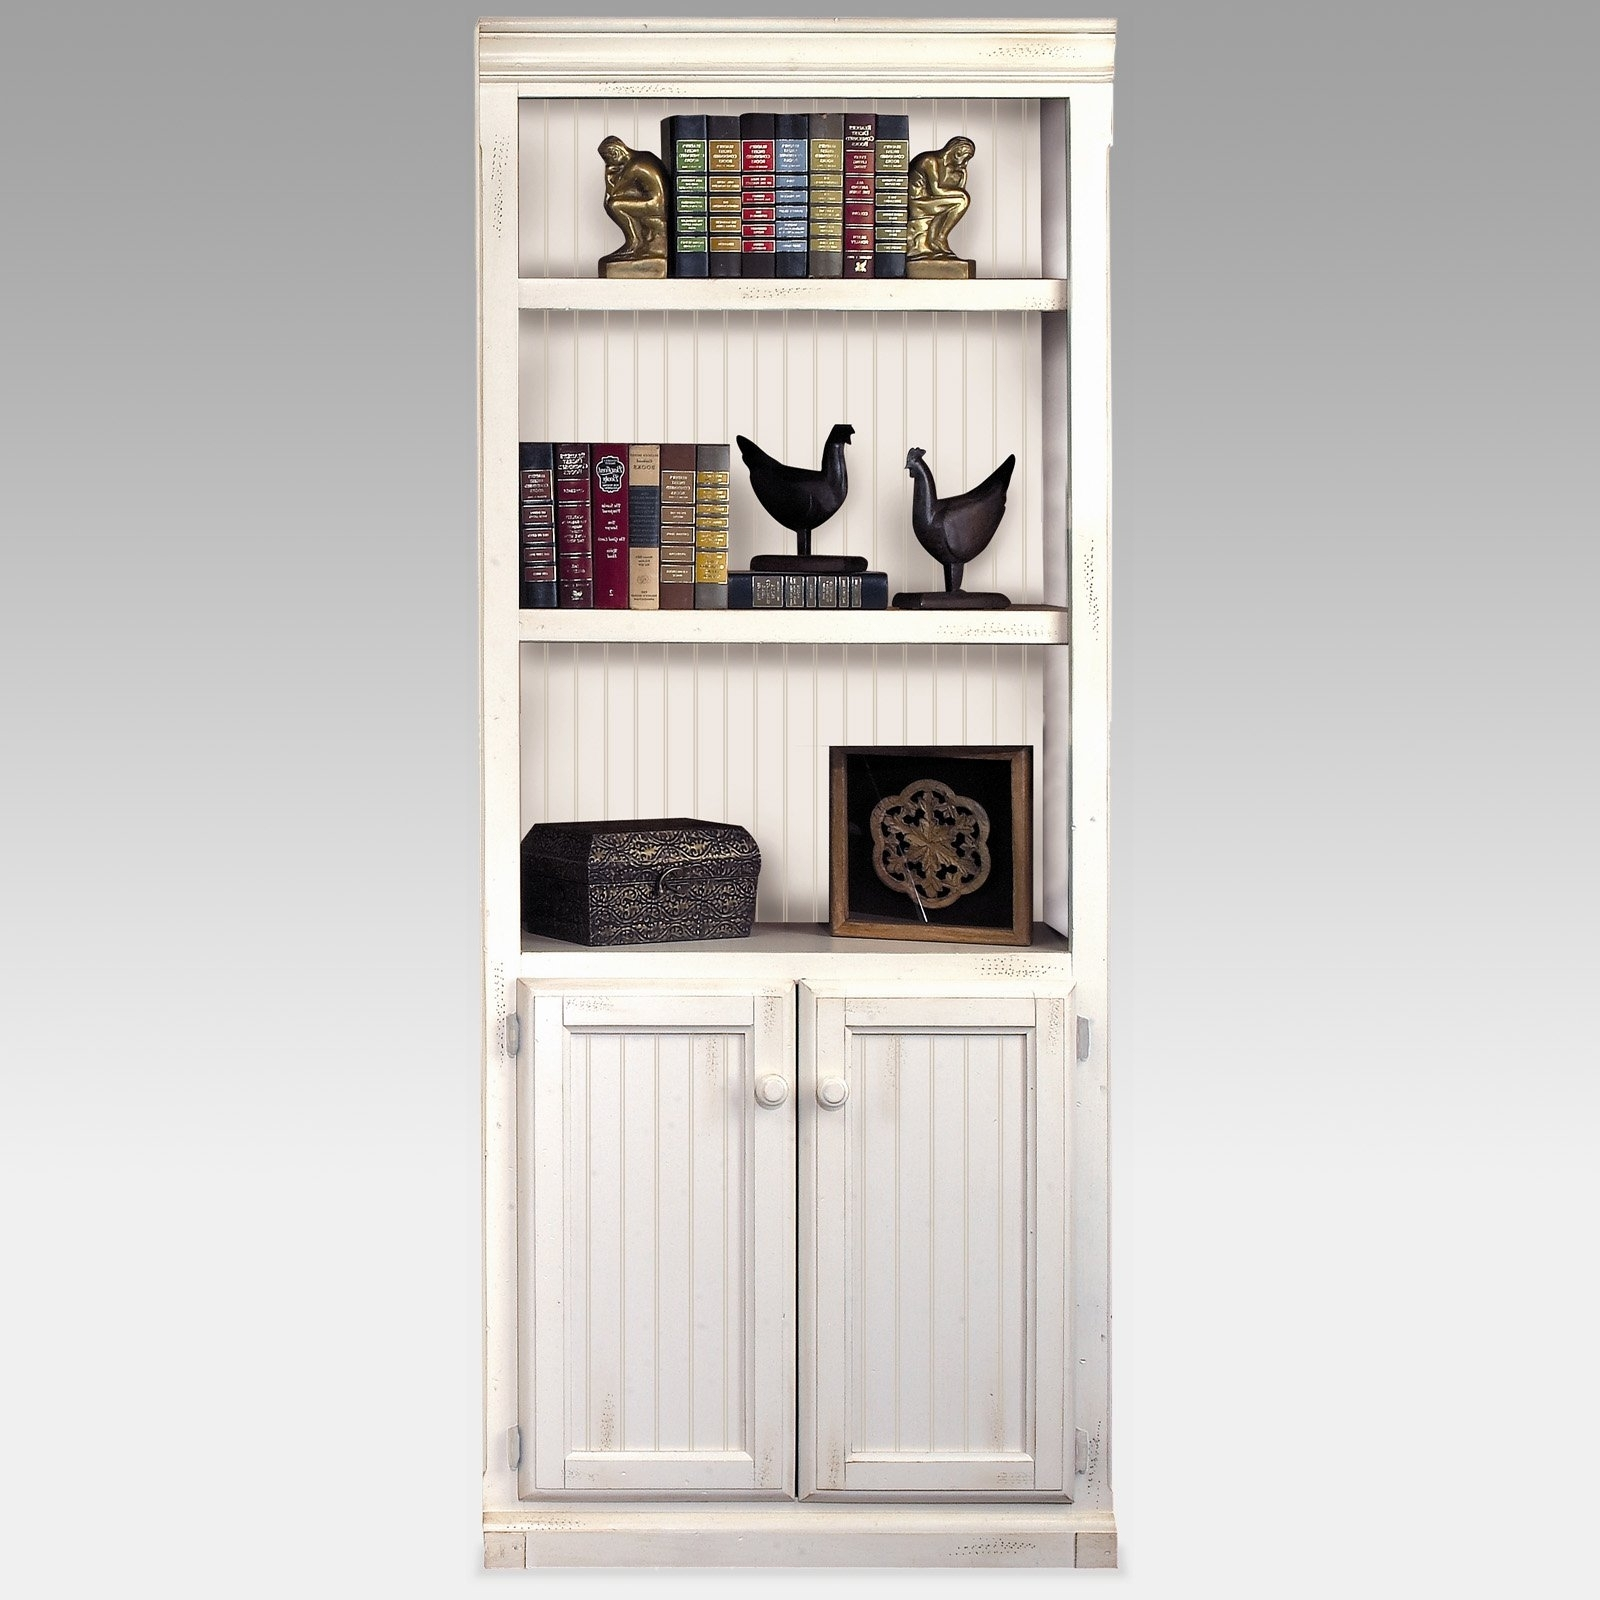 Gretchengerzina Regarding Bookcases With Doors On Bottom (View 5 of 15)